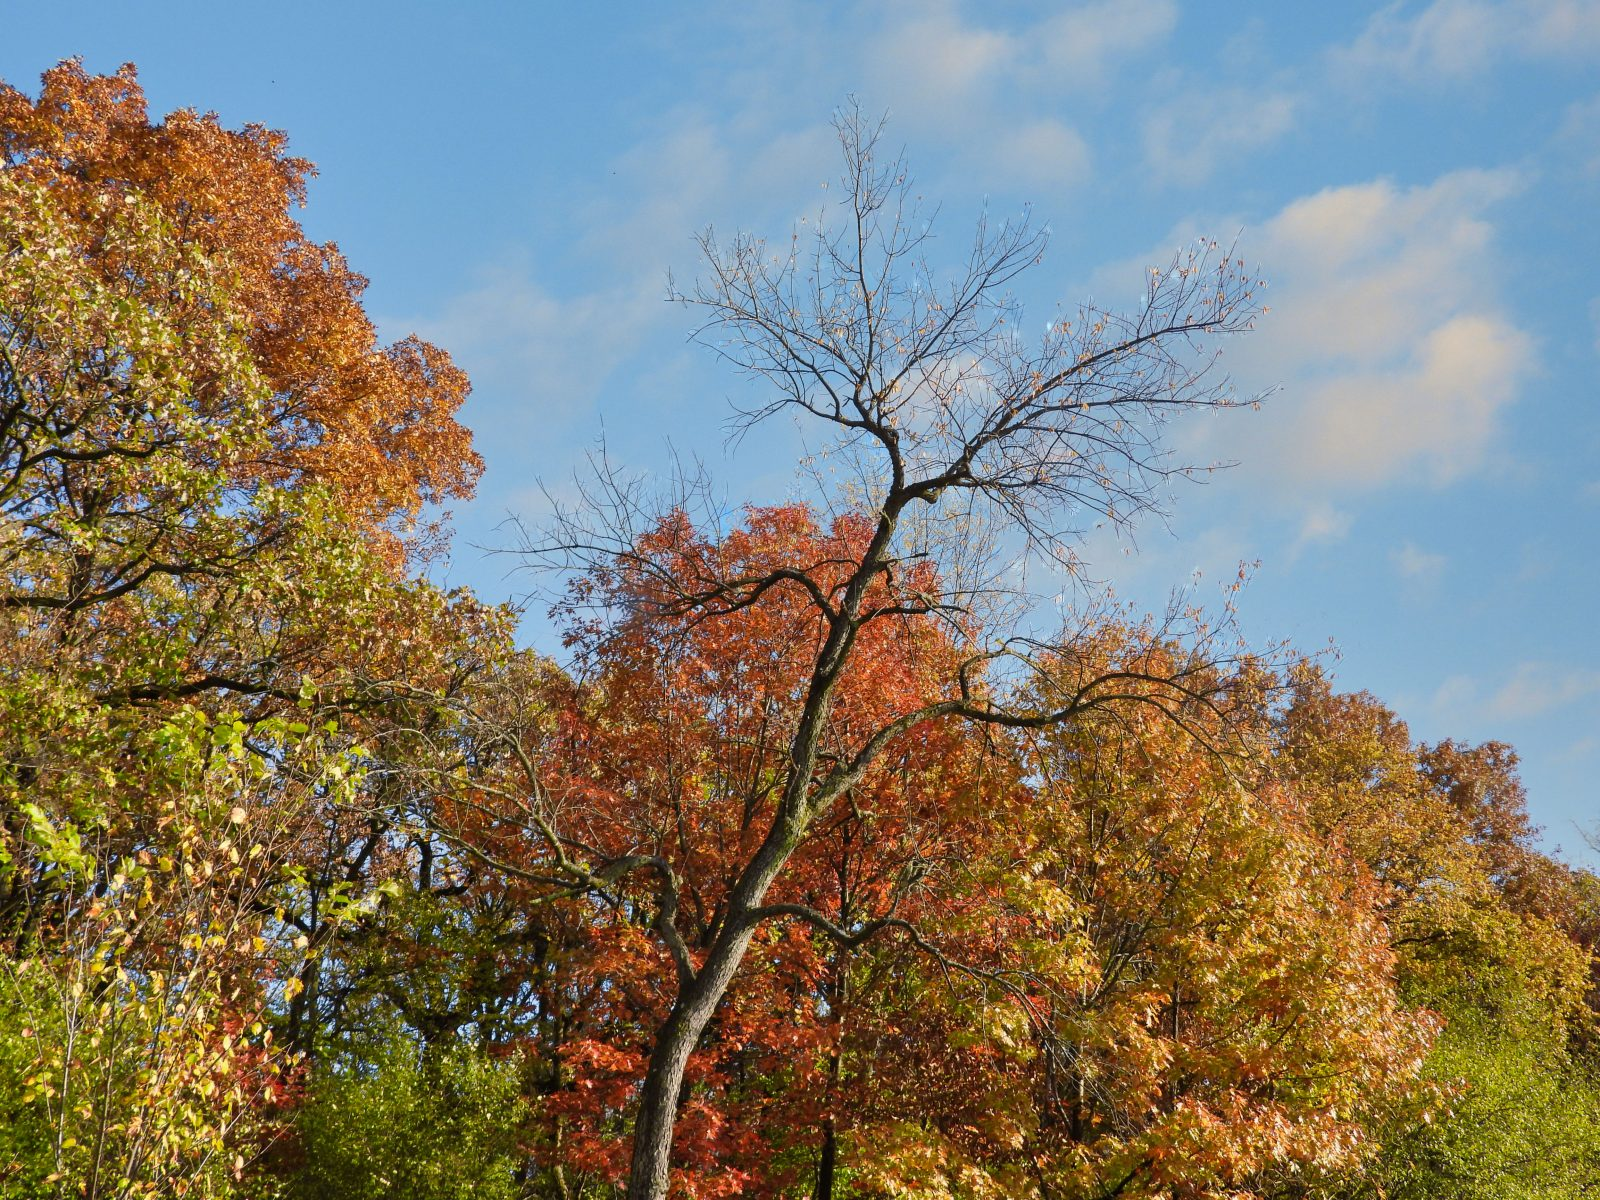 Bare Tree Stands in Front of Forest of Trees Filled with Autumn Colored Leaves in this Fall Landscape View from an Bright October Day